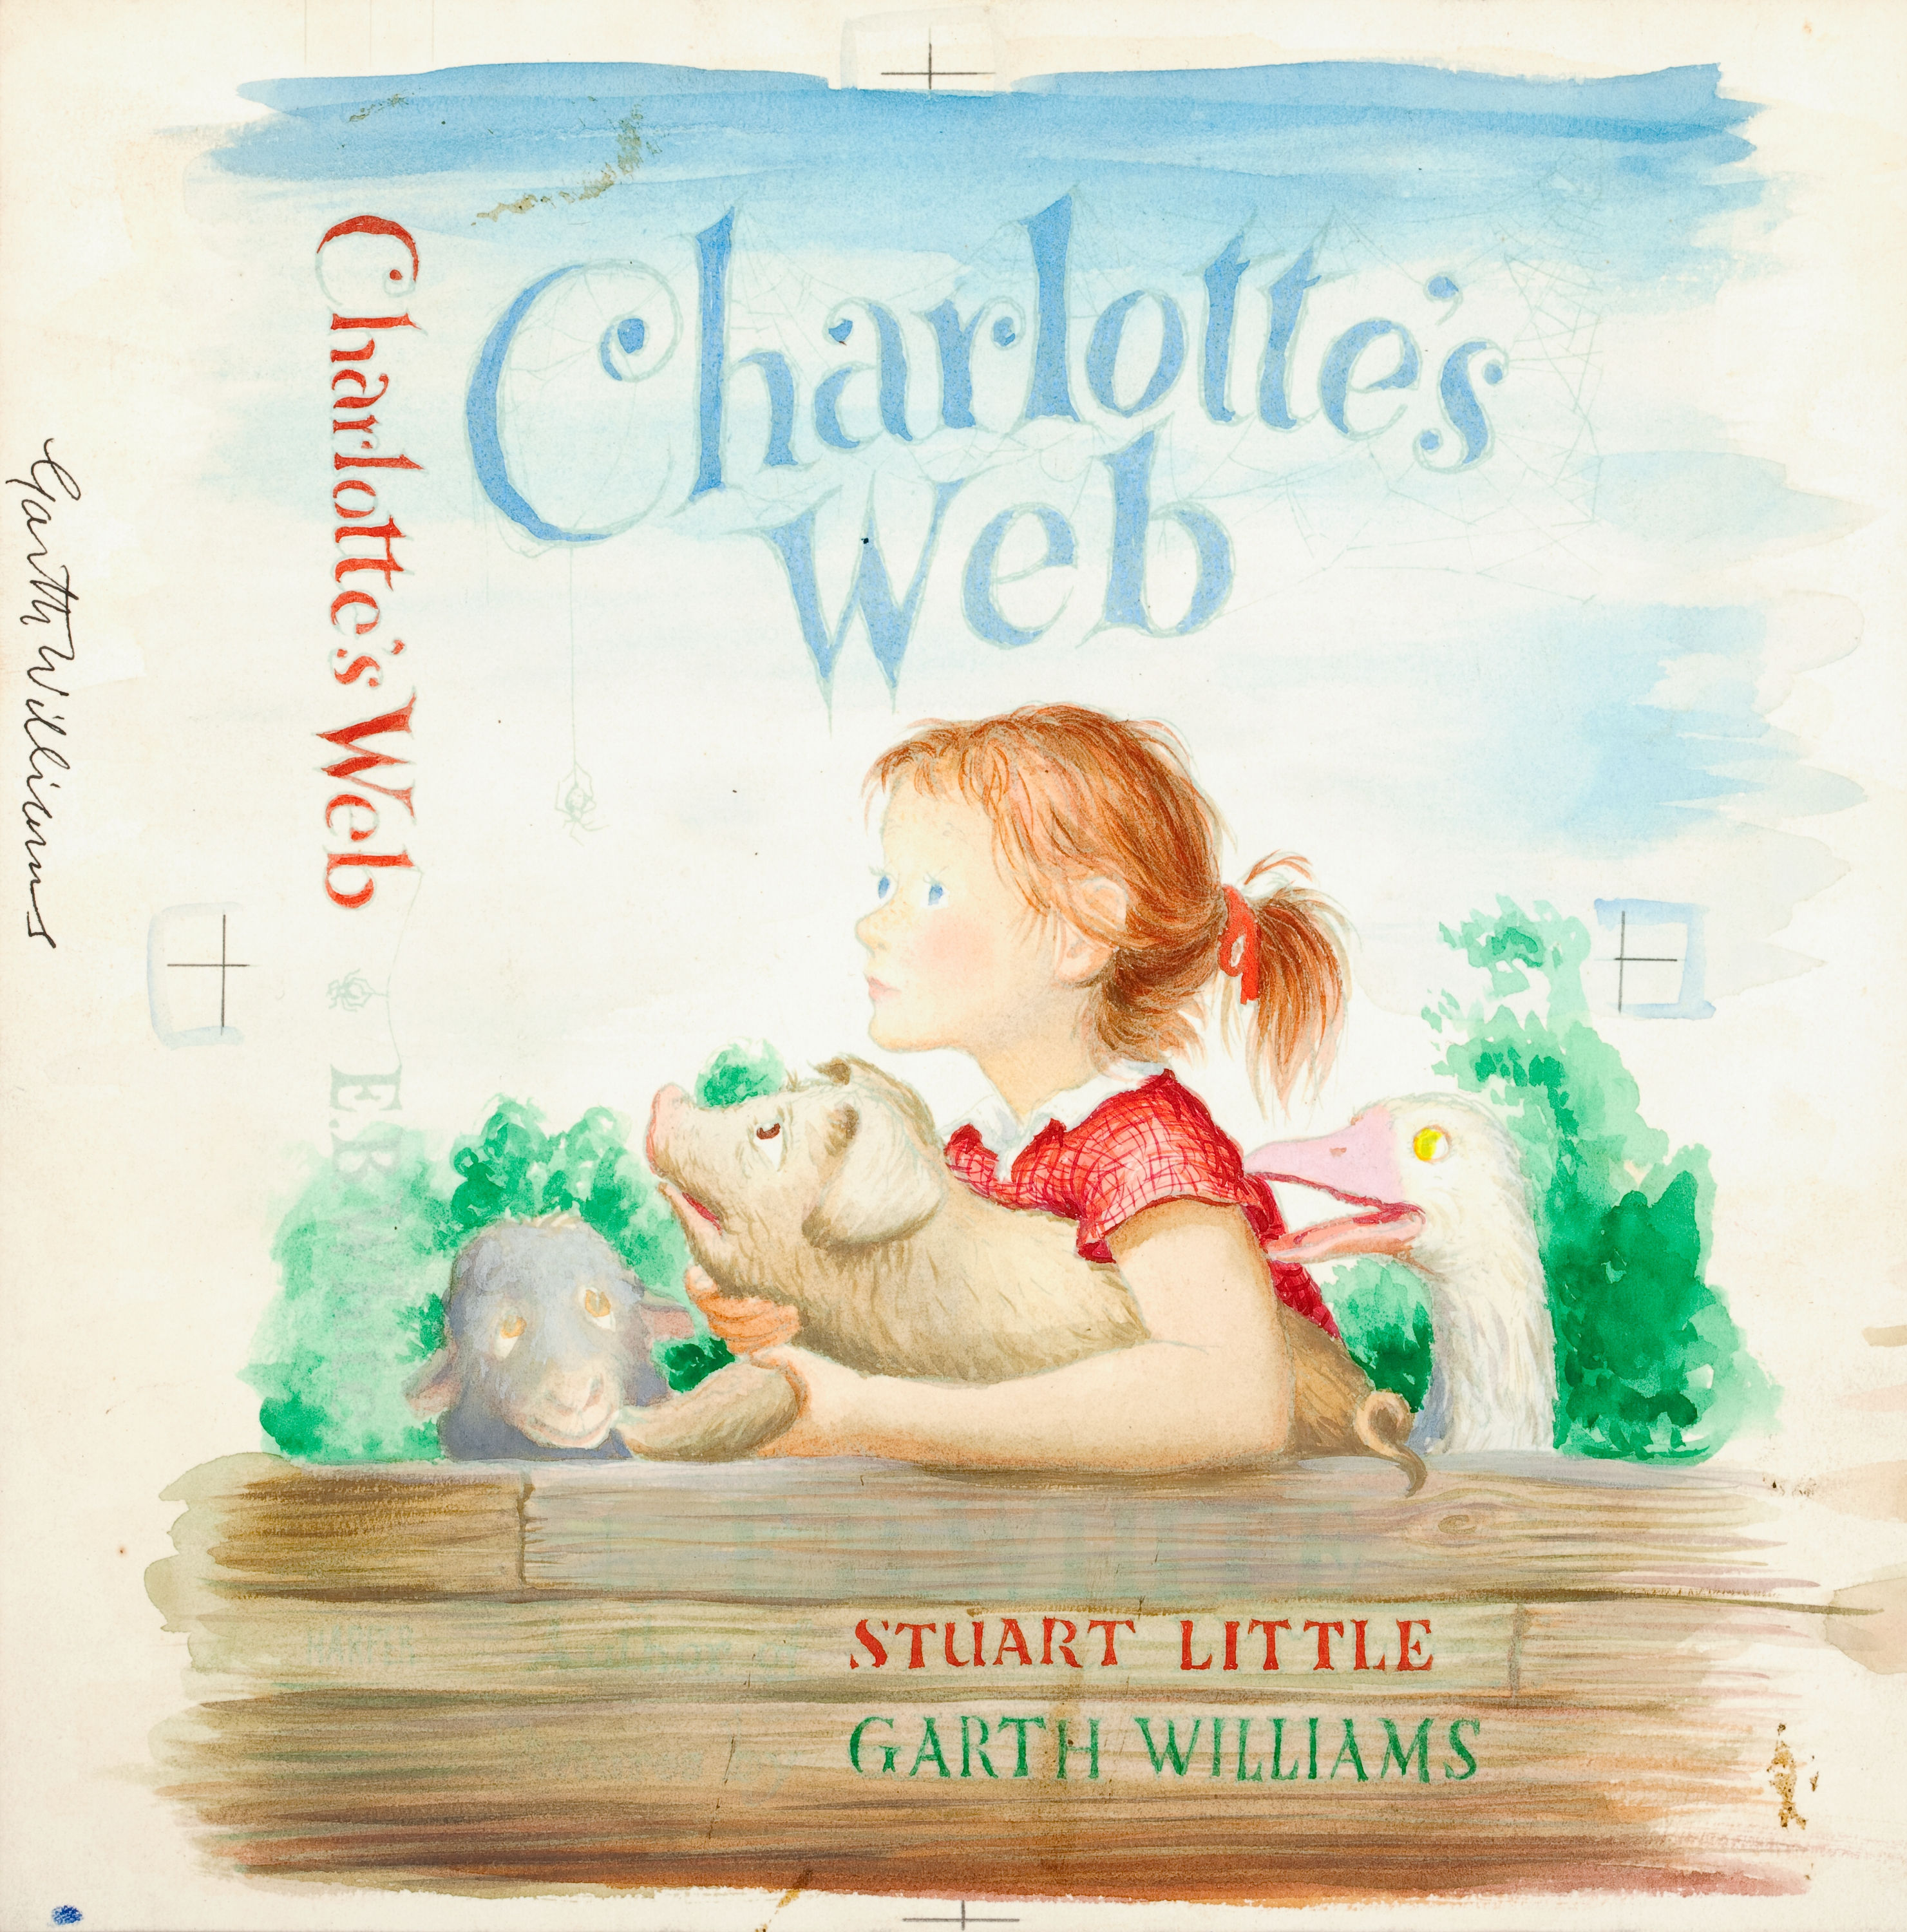 Watercolor book covers - Heritage